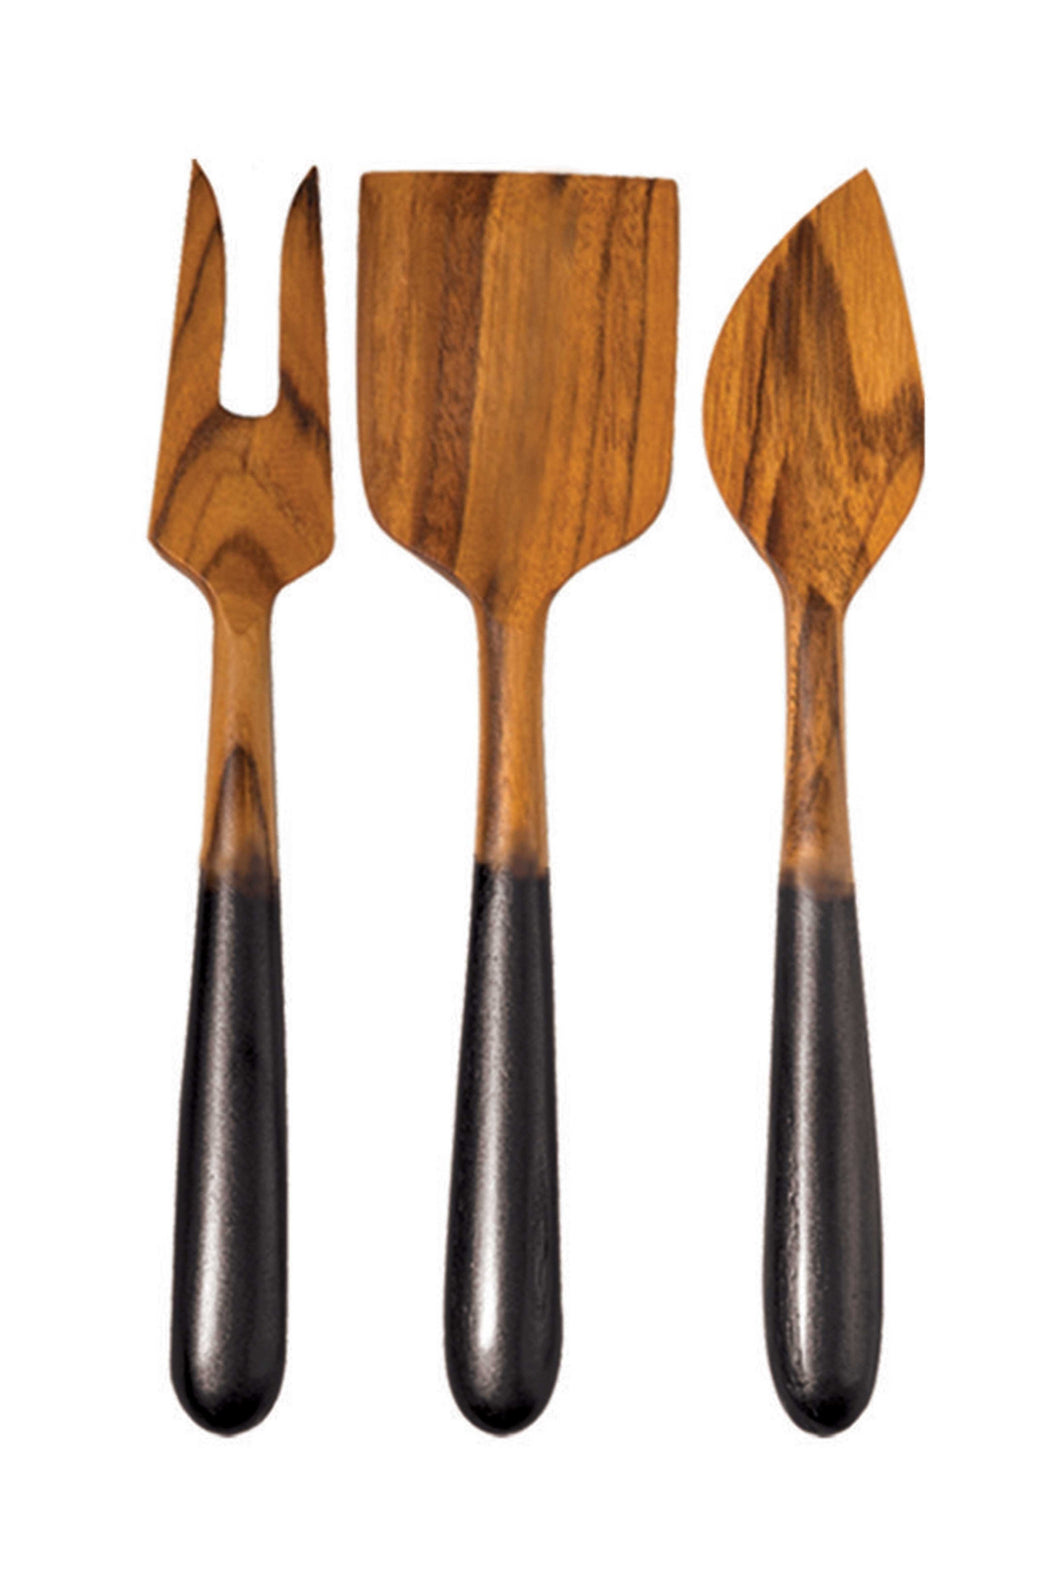 Teak Cheese Set of 3 with Black Handles